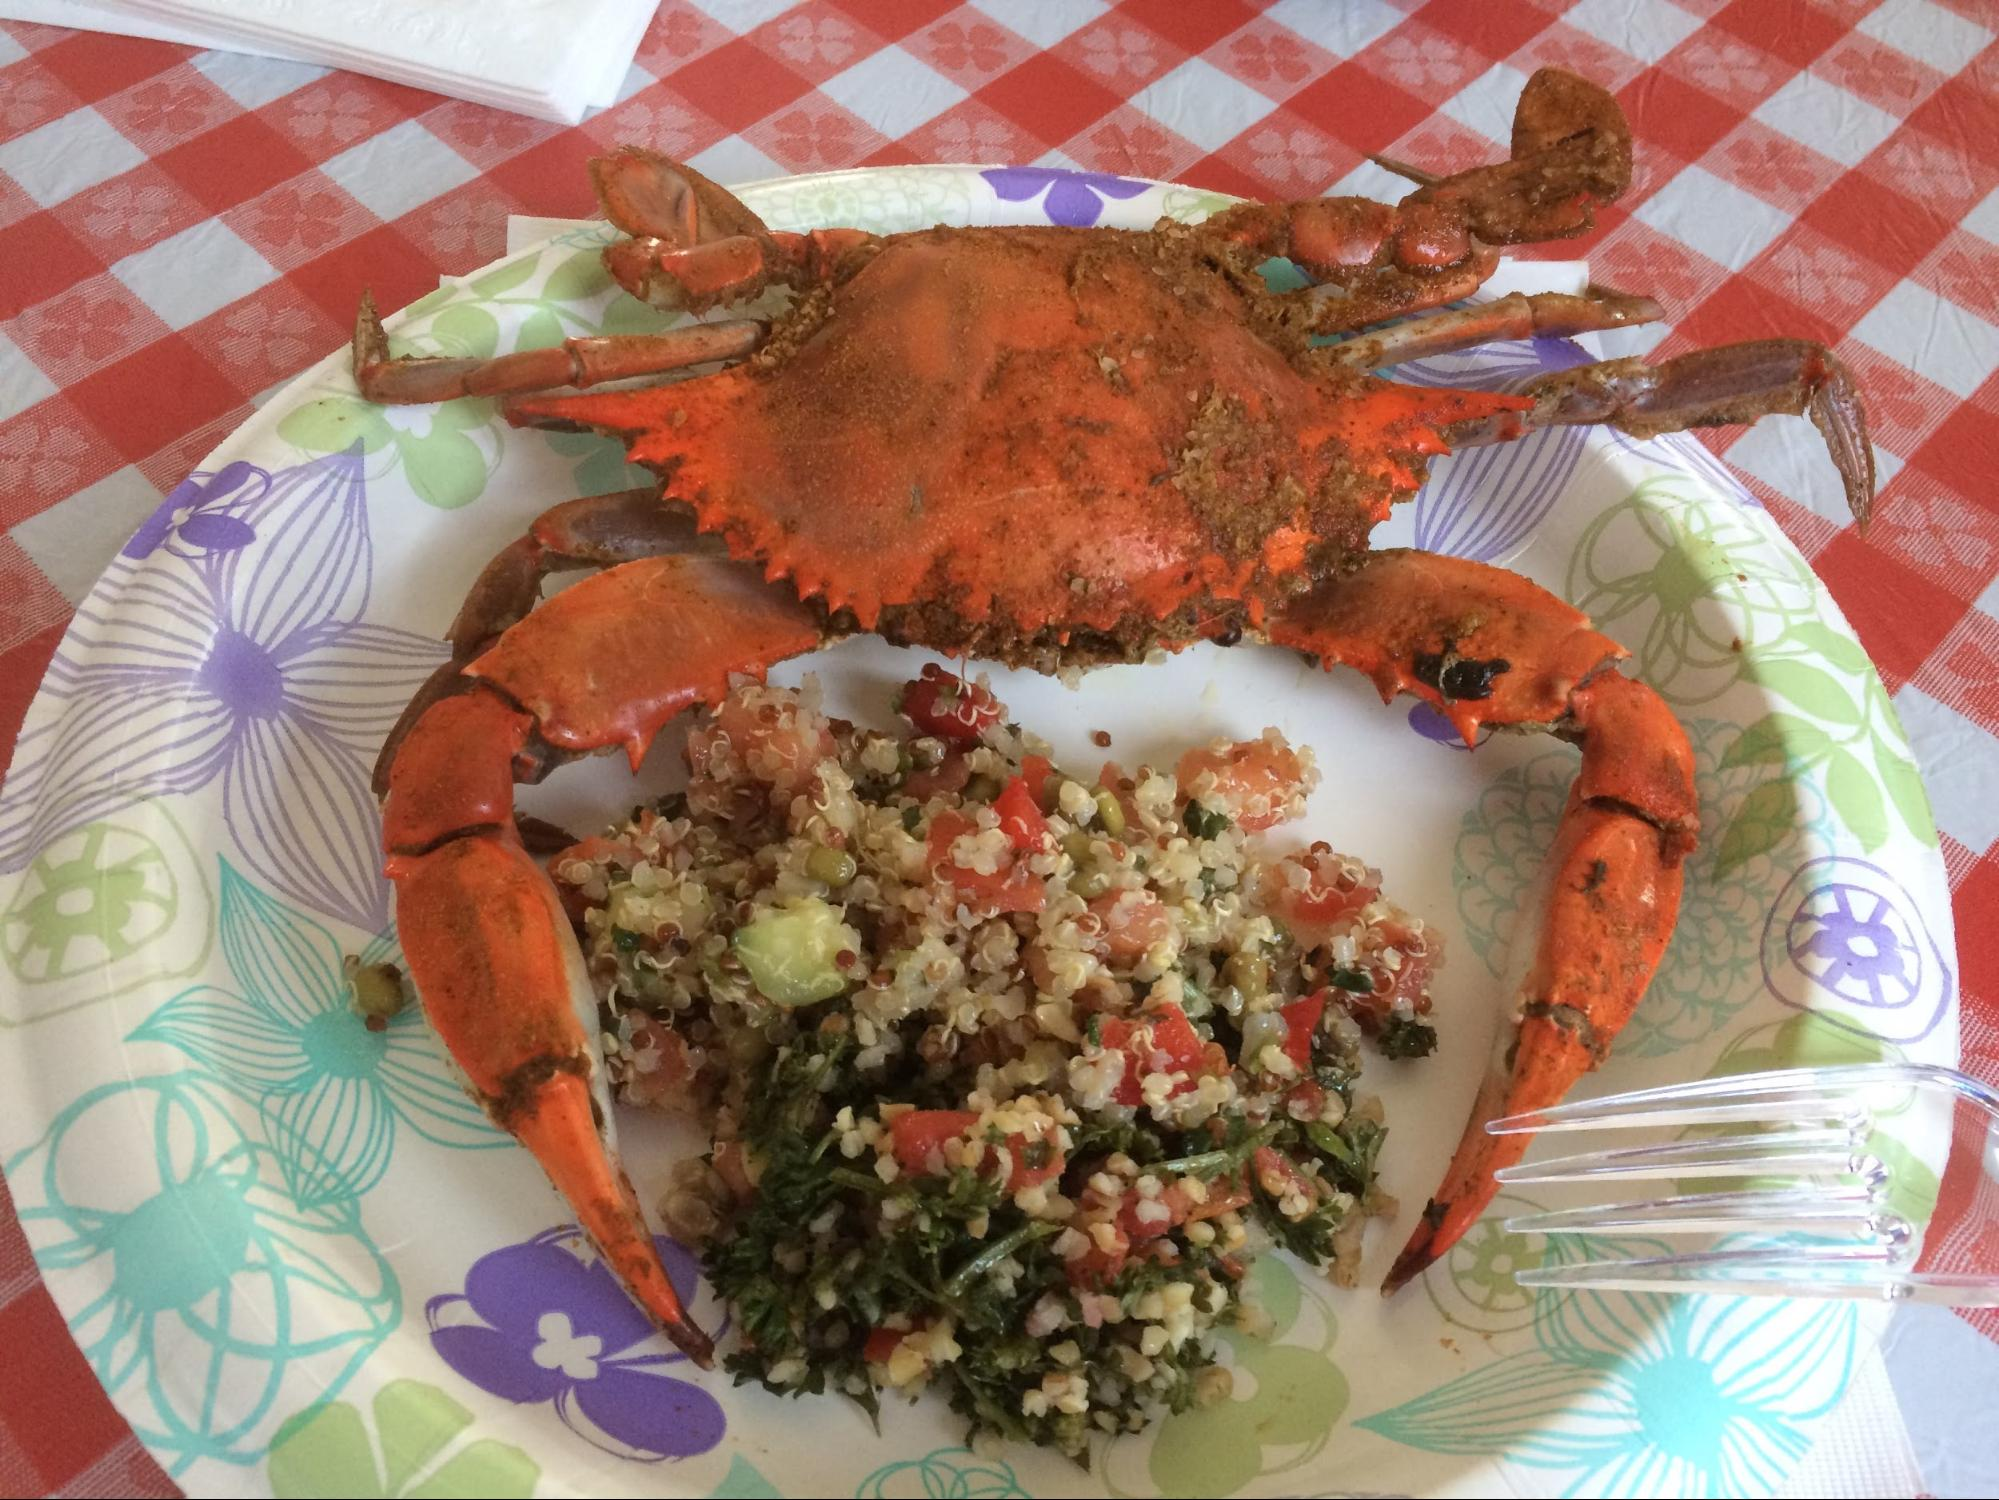 Crab Feast at the Fermi Summer School